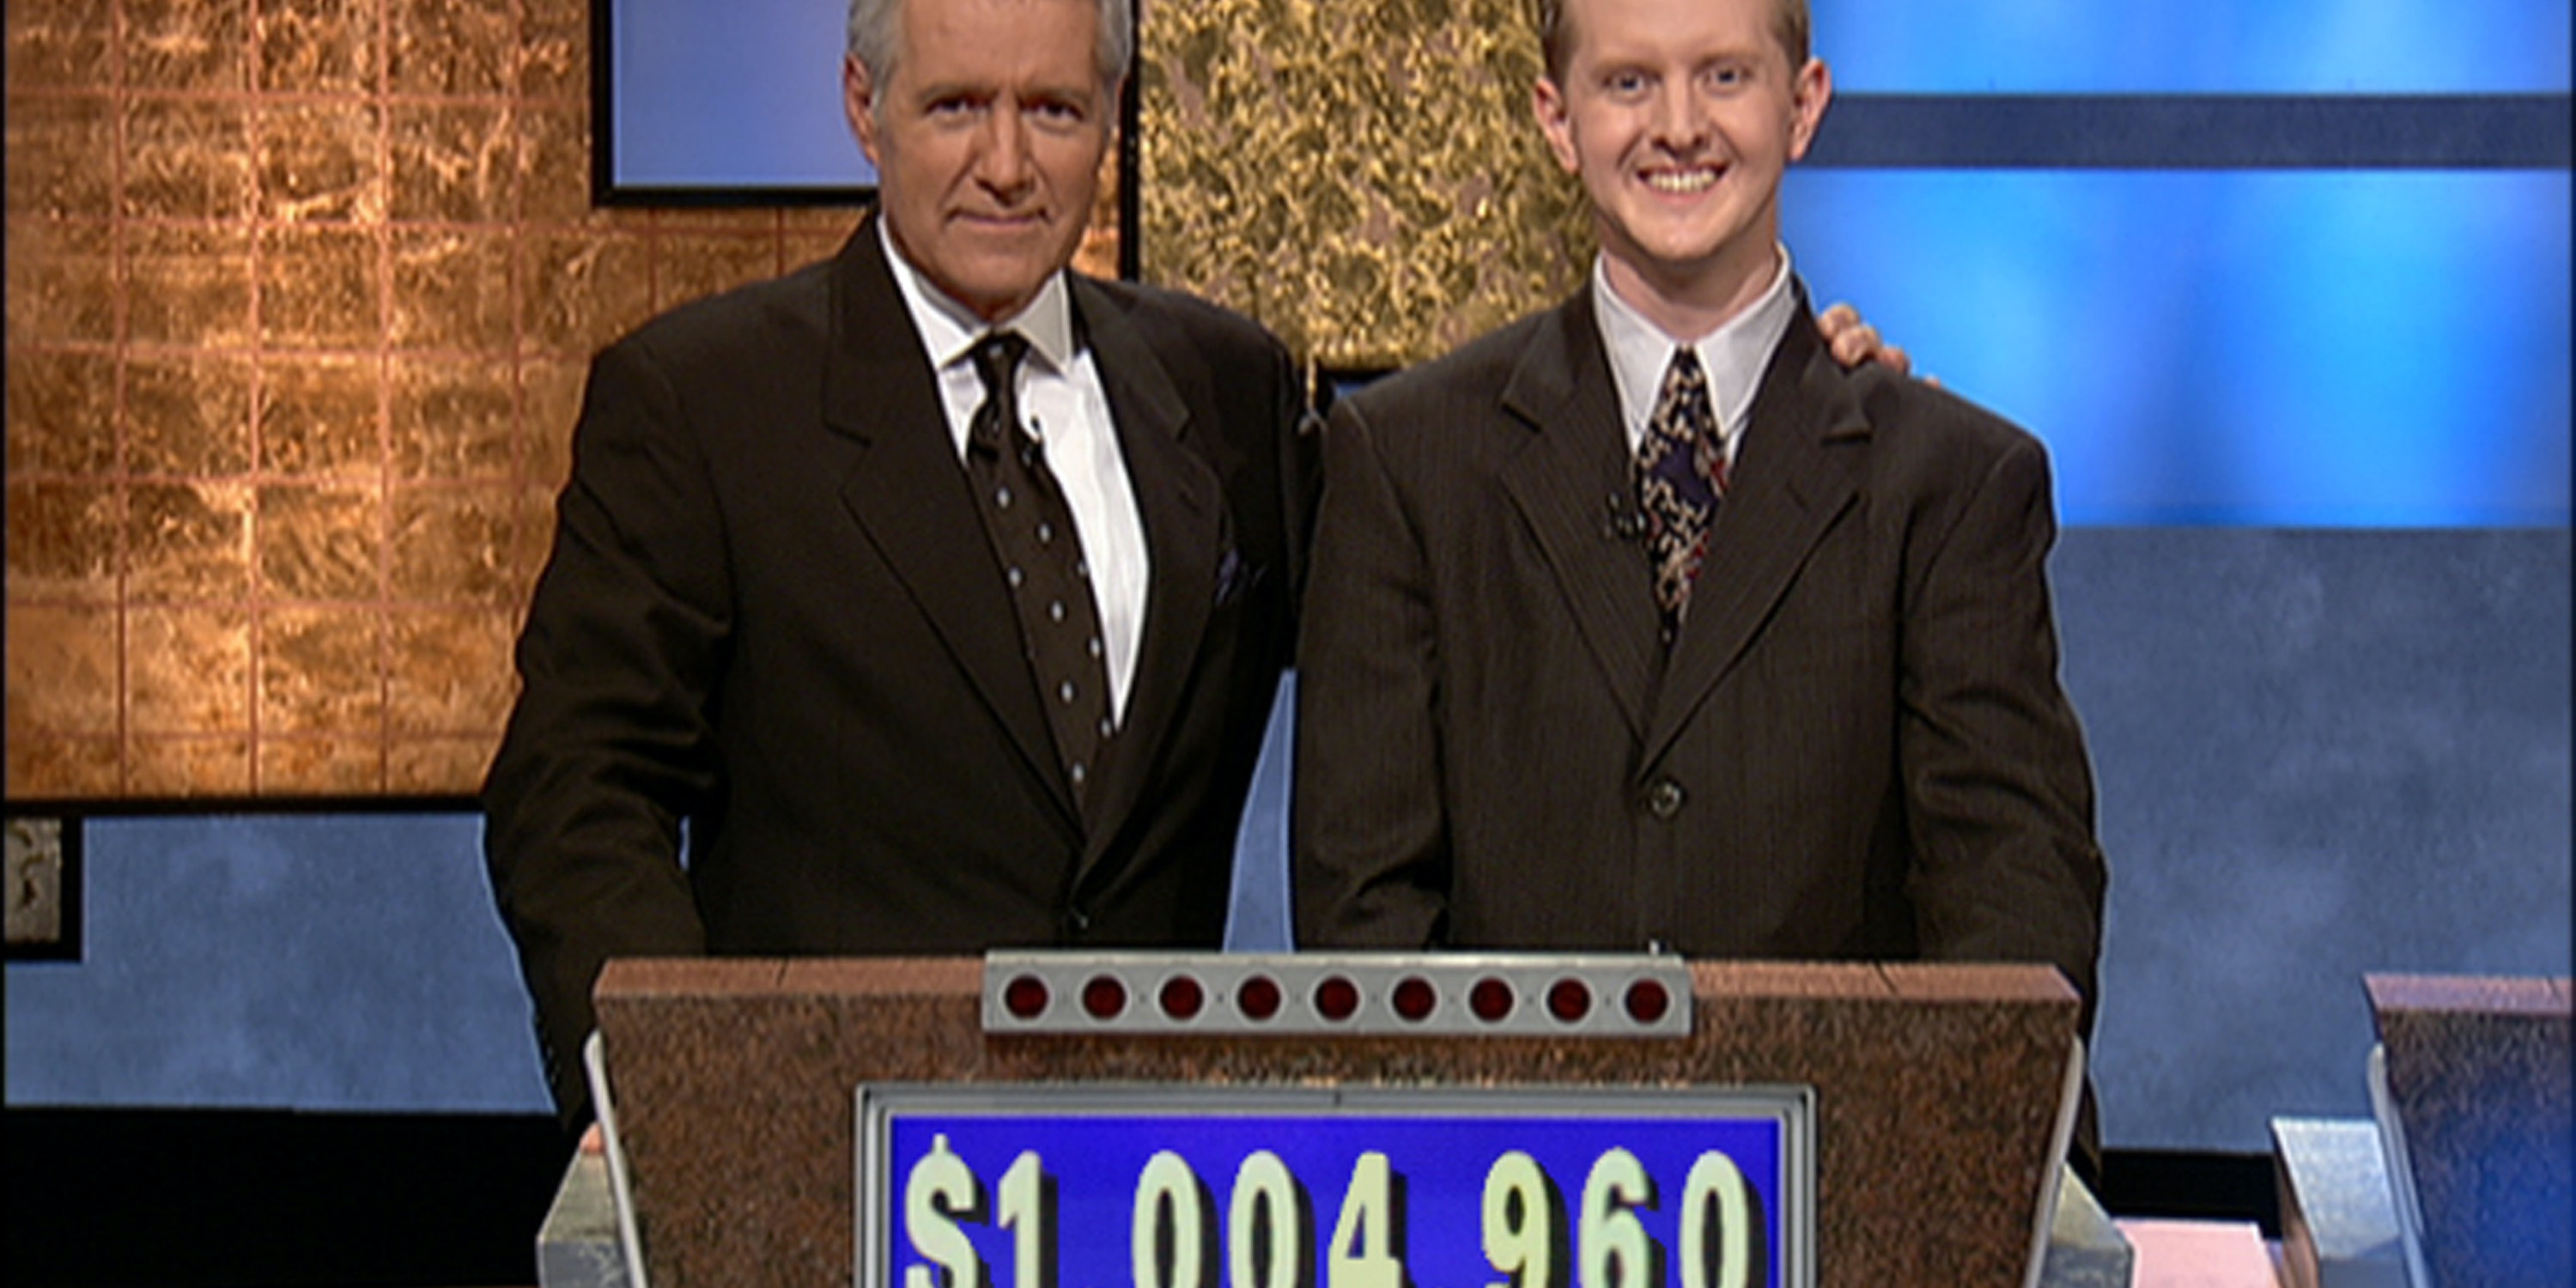 CULVER CITY, CA - JULY 14:  Jeopardy host Alex Trebek, (L) poses contestant Ken Jennings after his earnings from his record breaking streak on the gameshow surpassed 1 million dollars July 14, 2004 in Culver City, California.  (Photo by Jeopardy Productions via Getty Images)